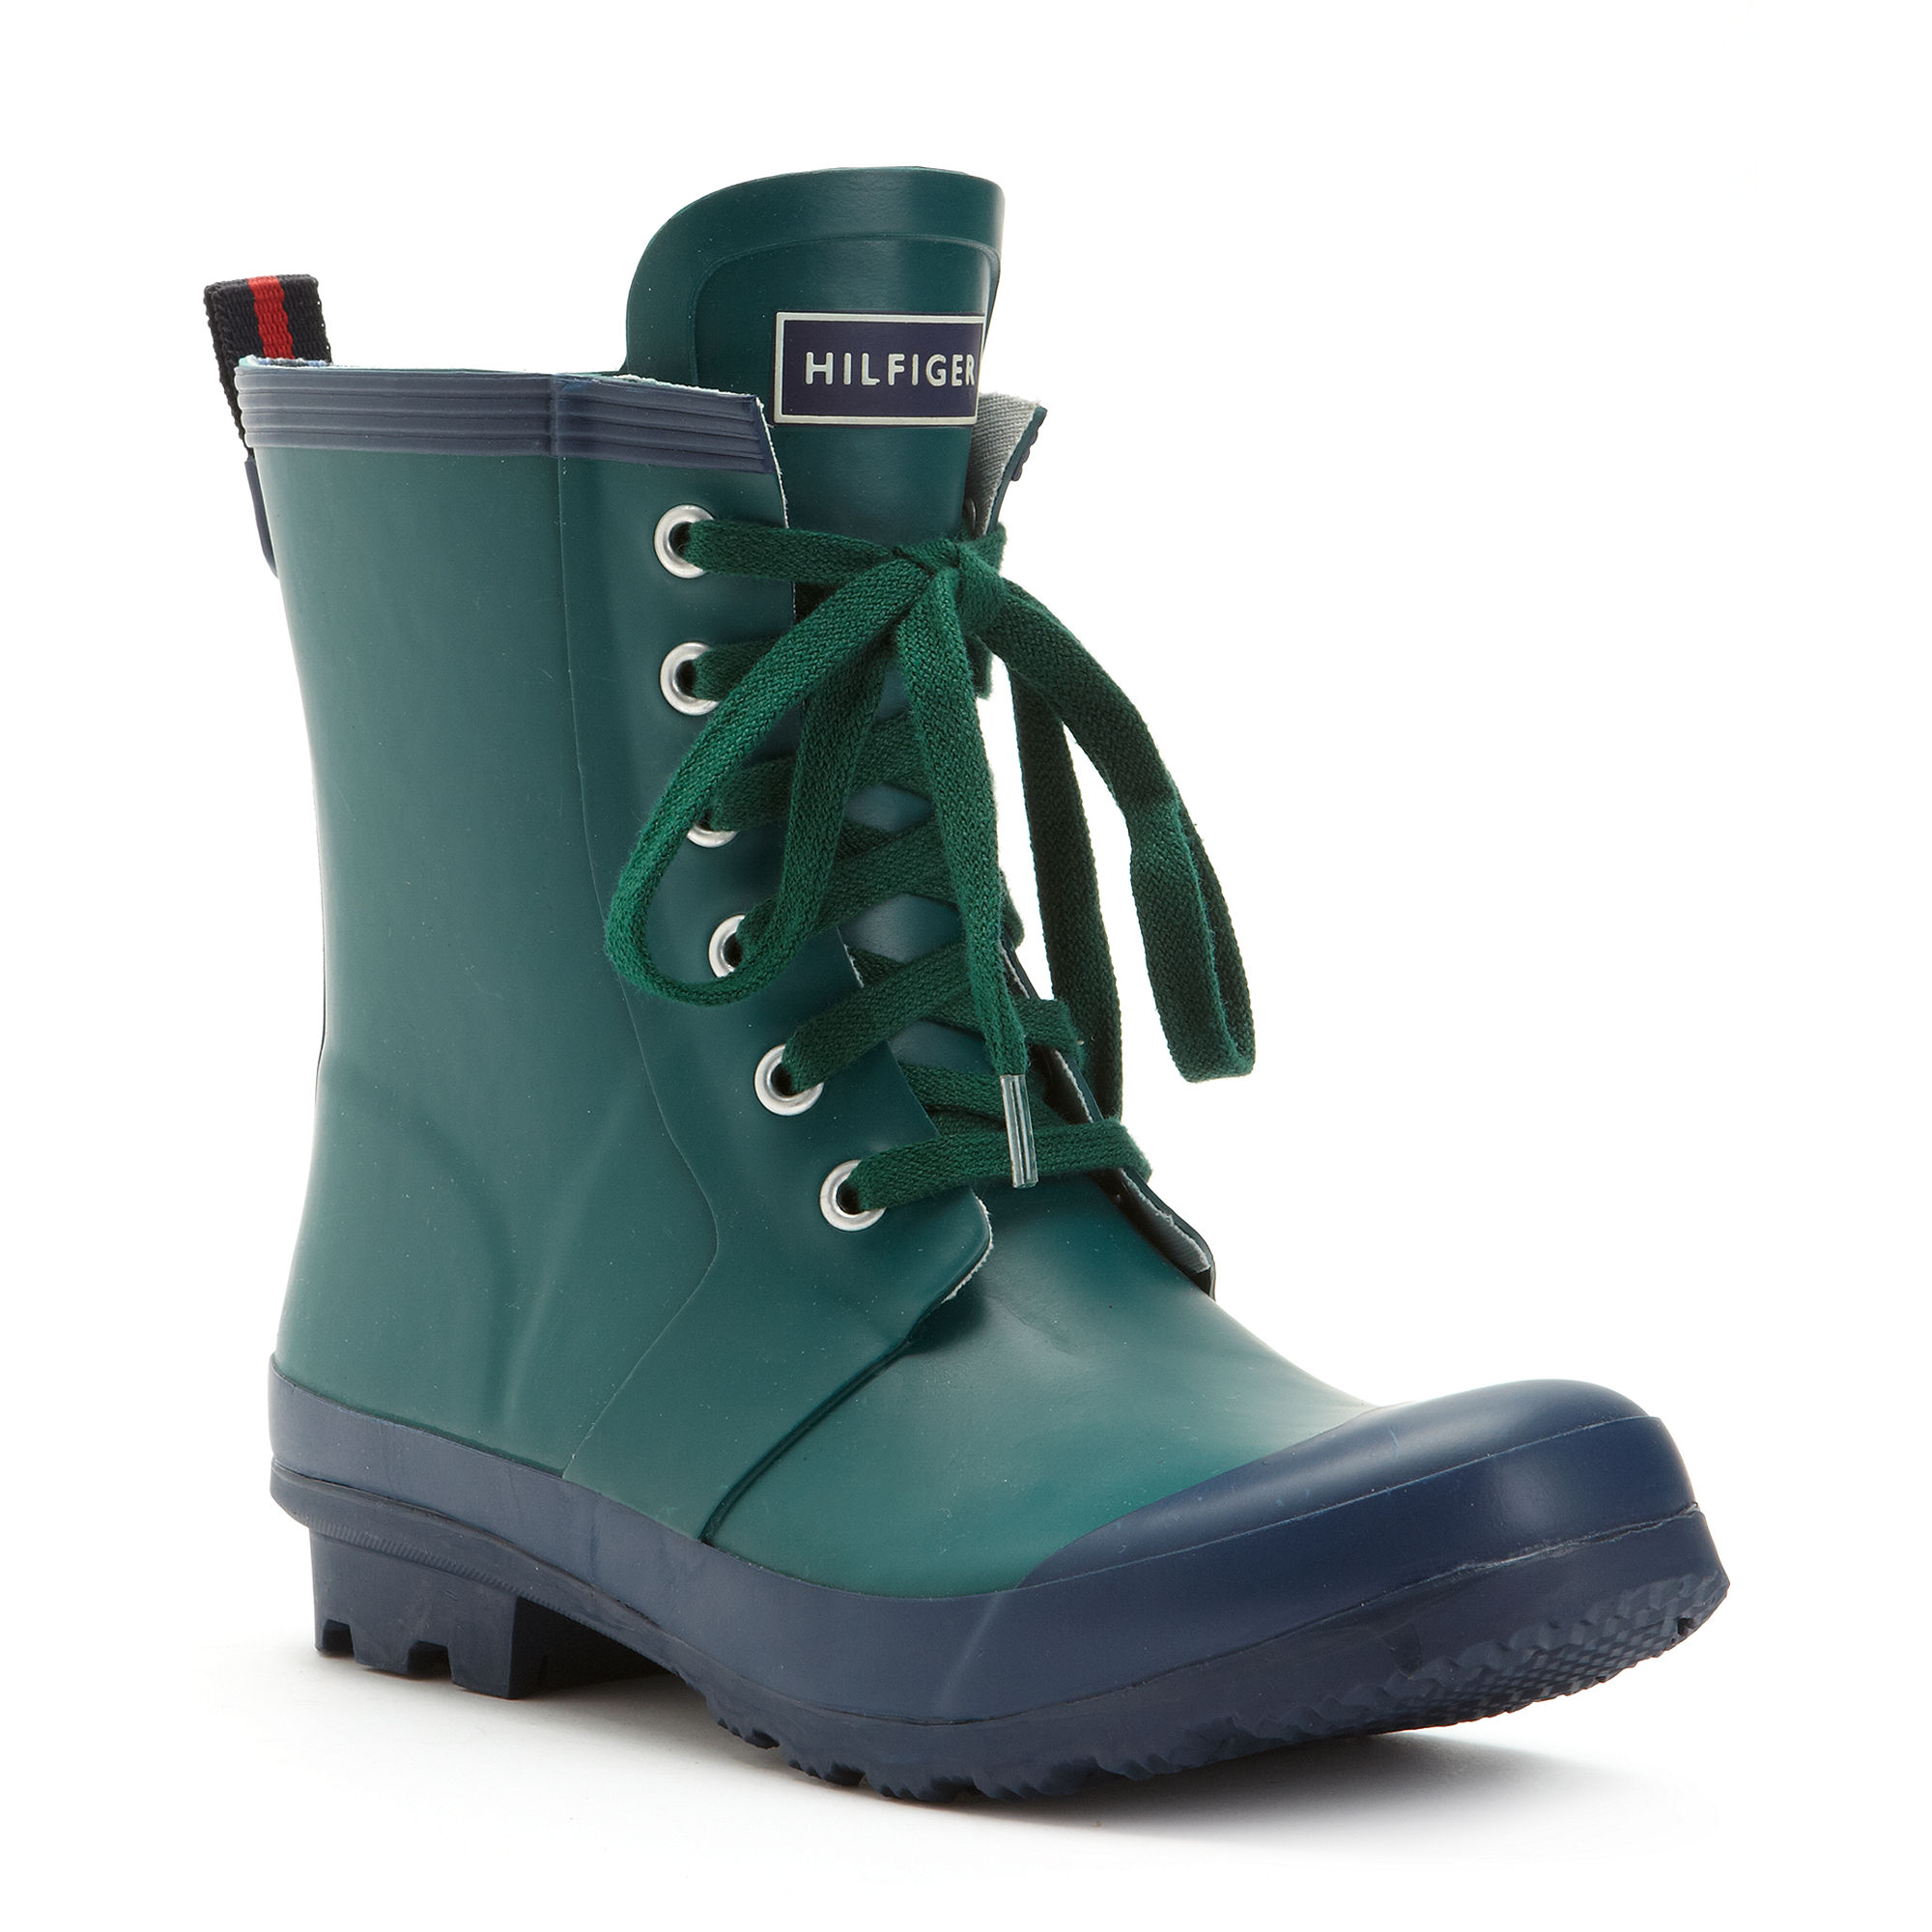 tommy hilfiger renegade rain booties in green pine green. Black Bedroom Furniture Sets. Home Design Ideas